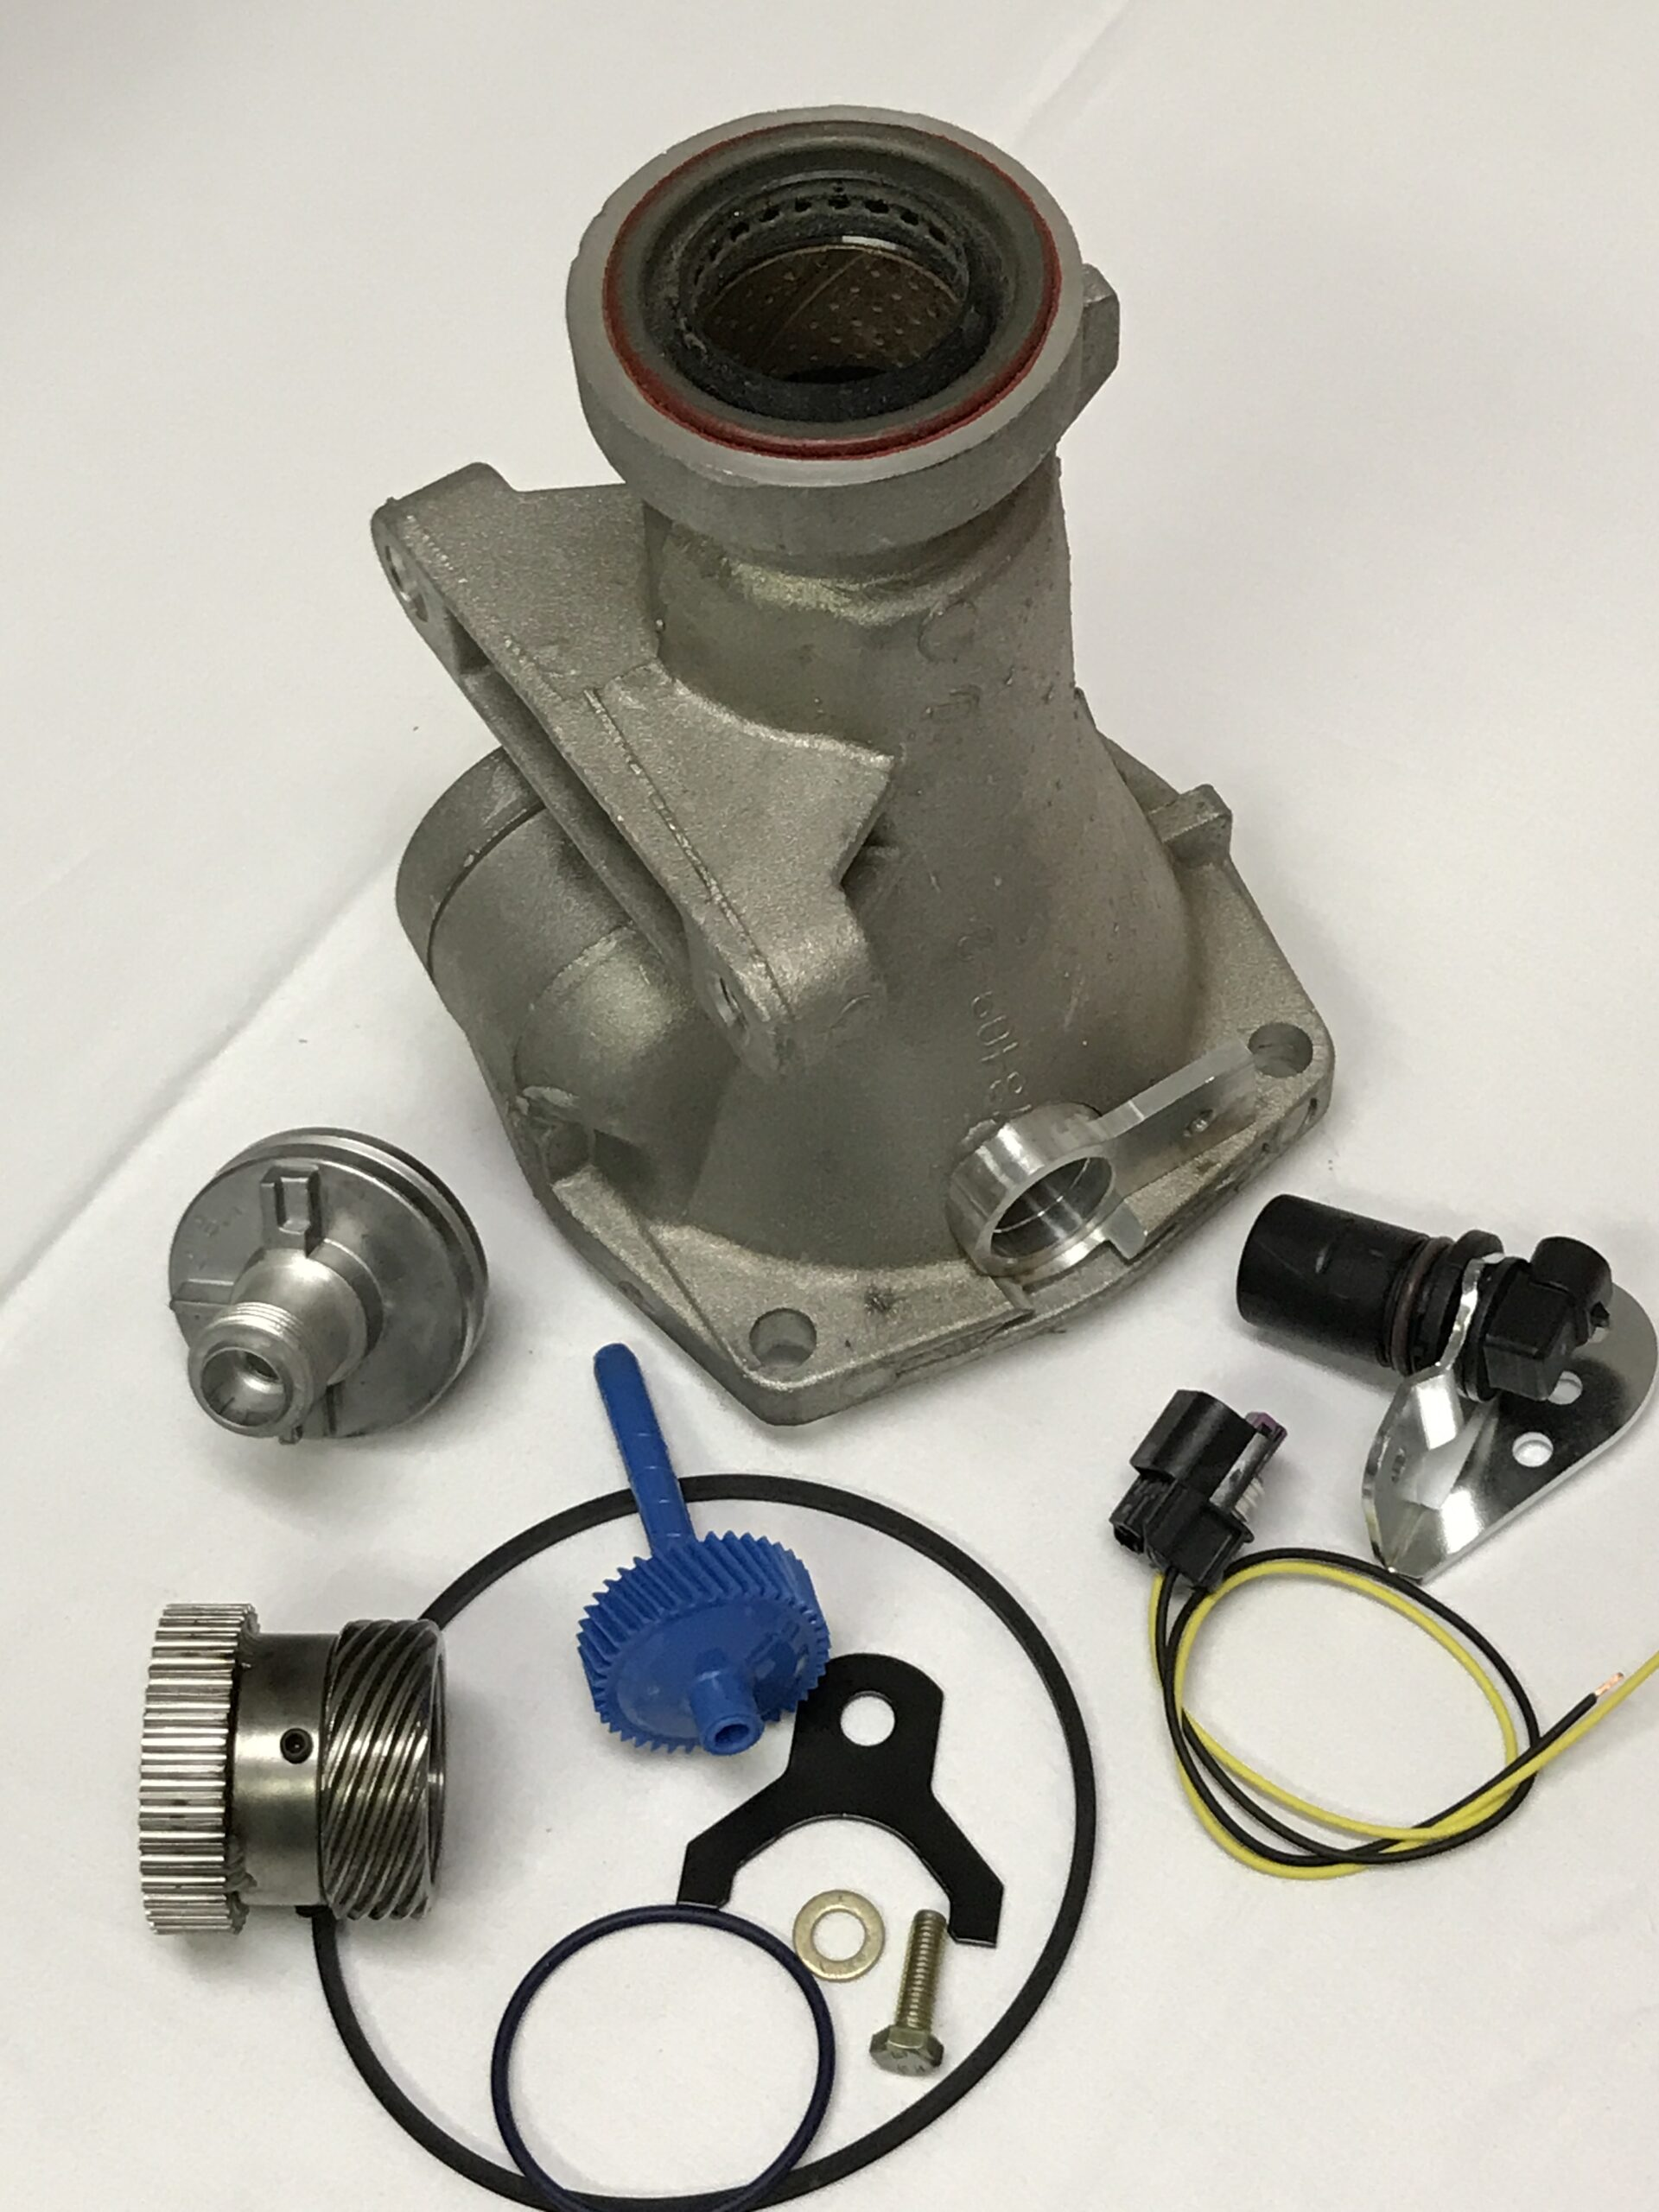 parts needed for a manual conversion